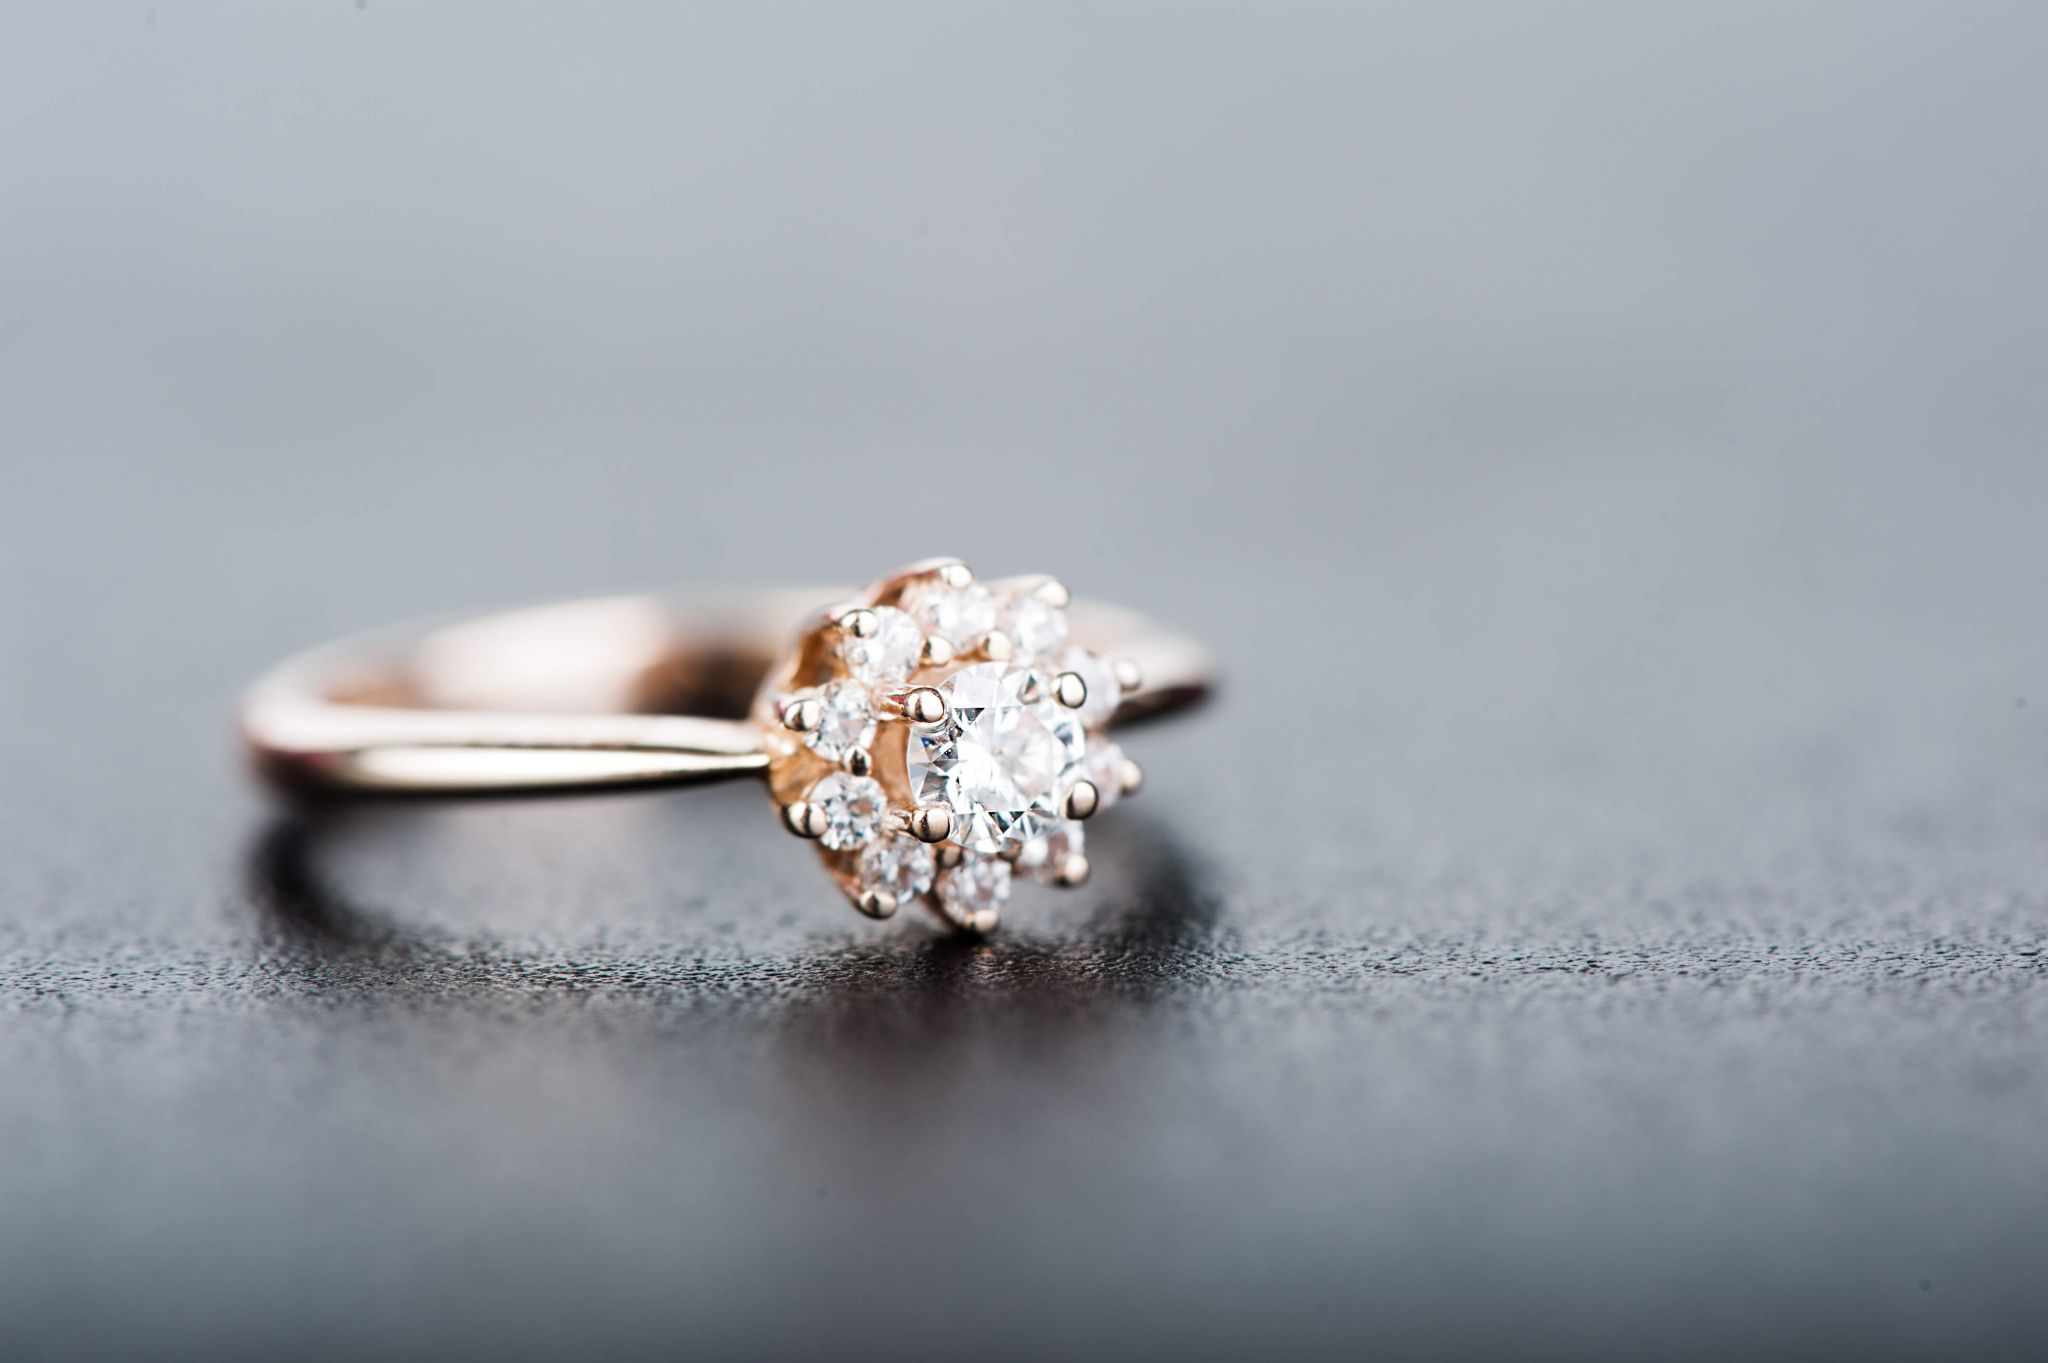 vintage engagement rings - diamond ring on a grey background